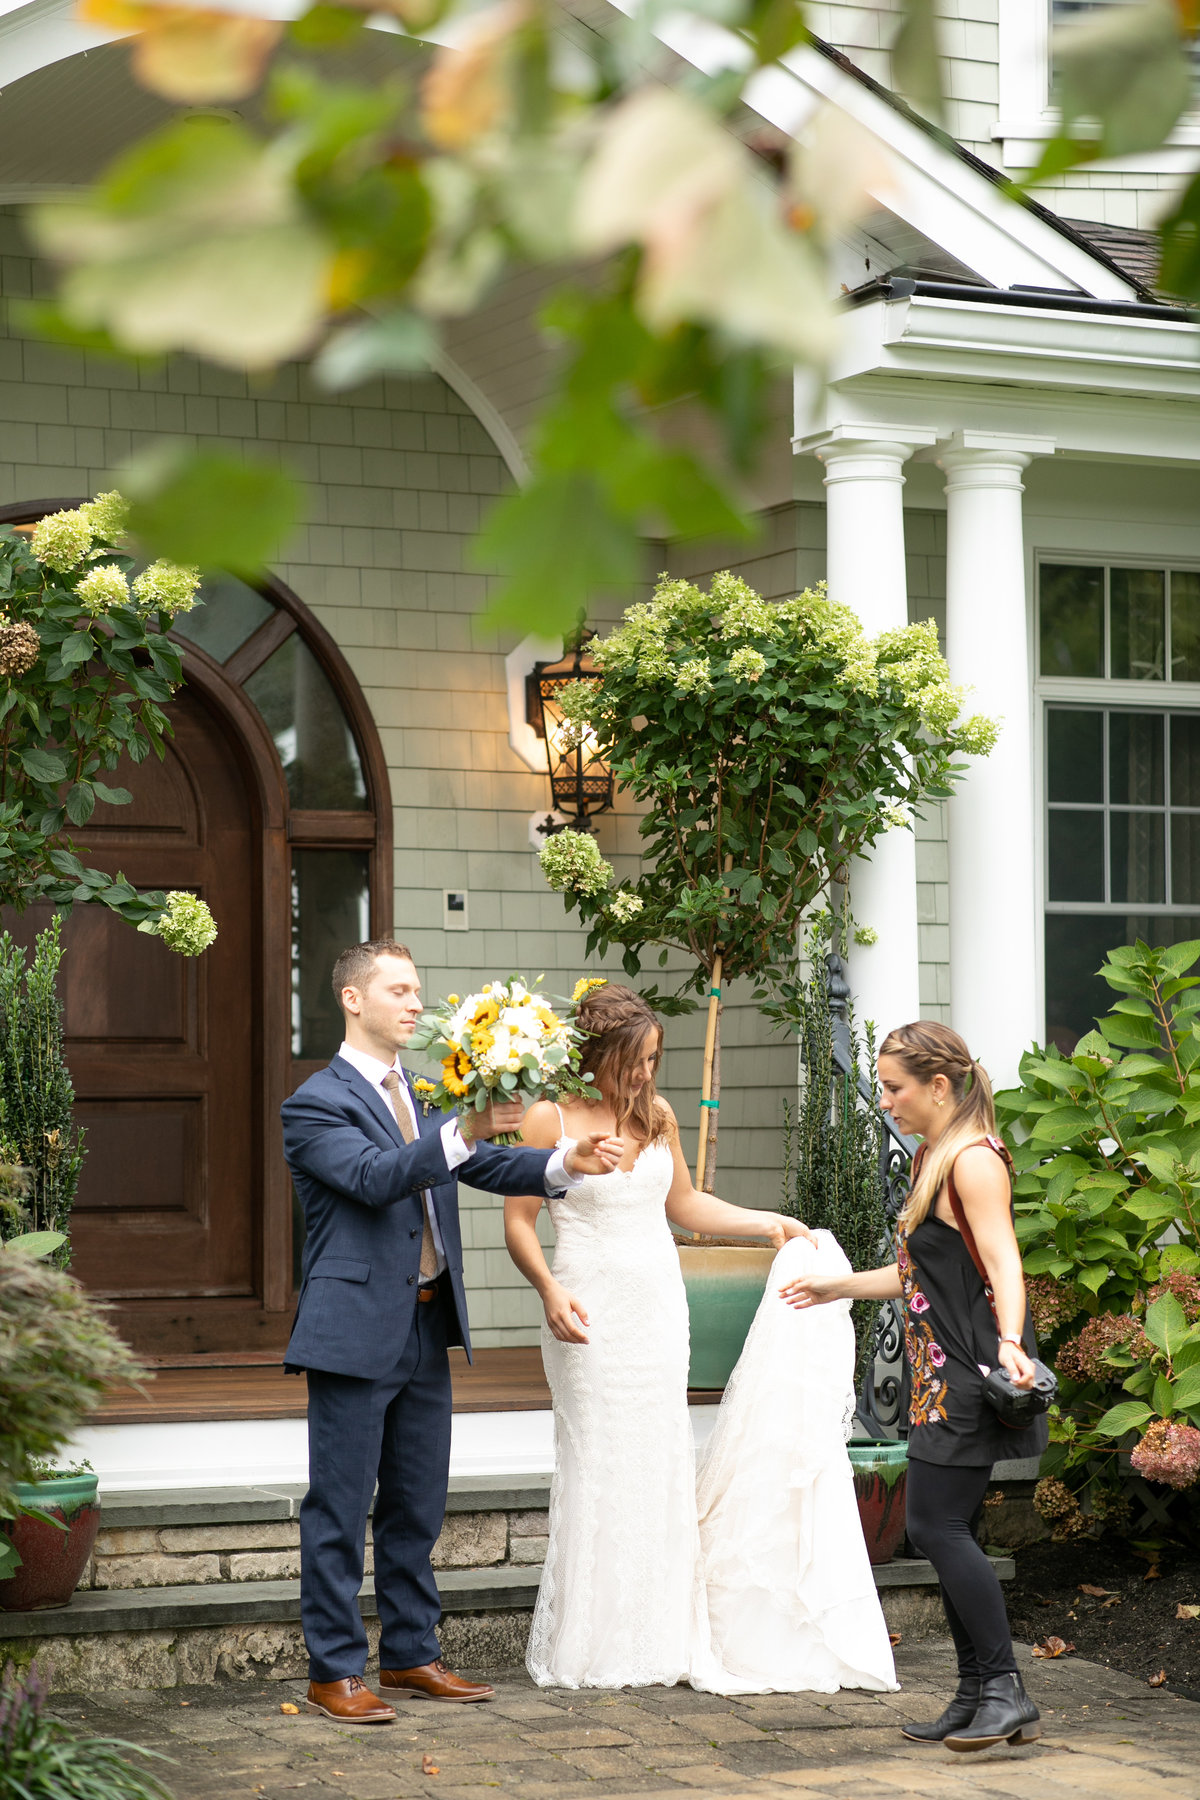 Ashley Mac Photographs - New Jersey Weddings - Behind the Scenes of a Wedding - BTS-59